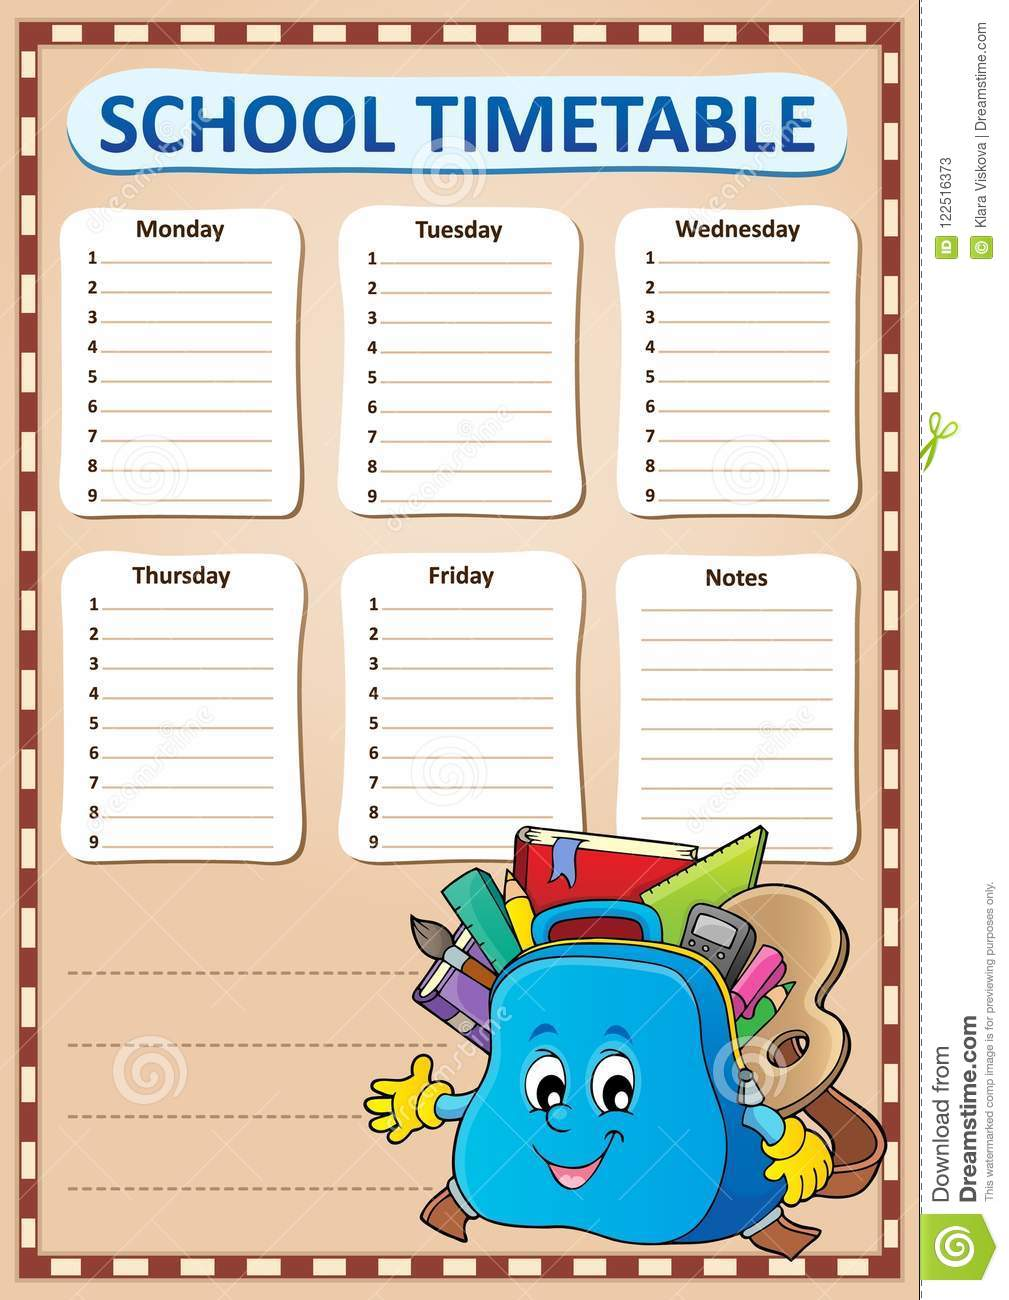 weekly school timetable template 4 stock vector illustration of